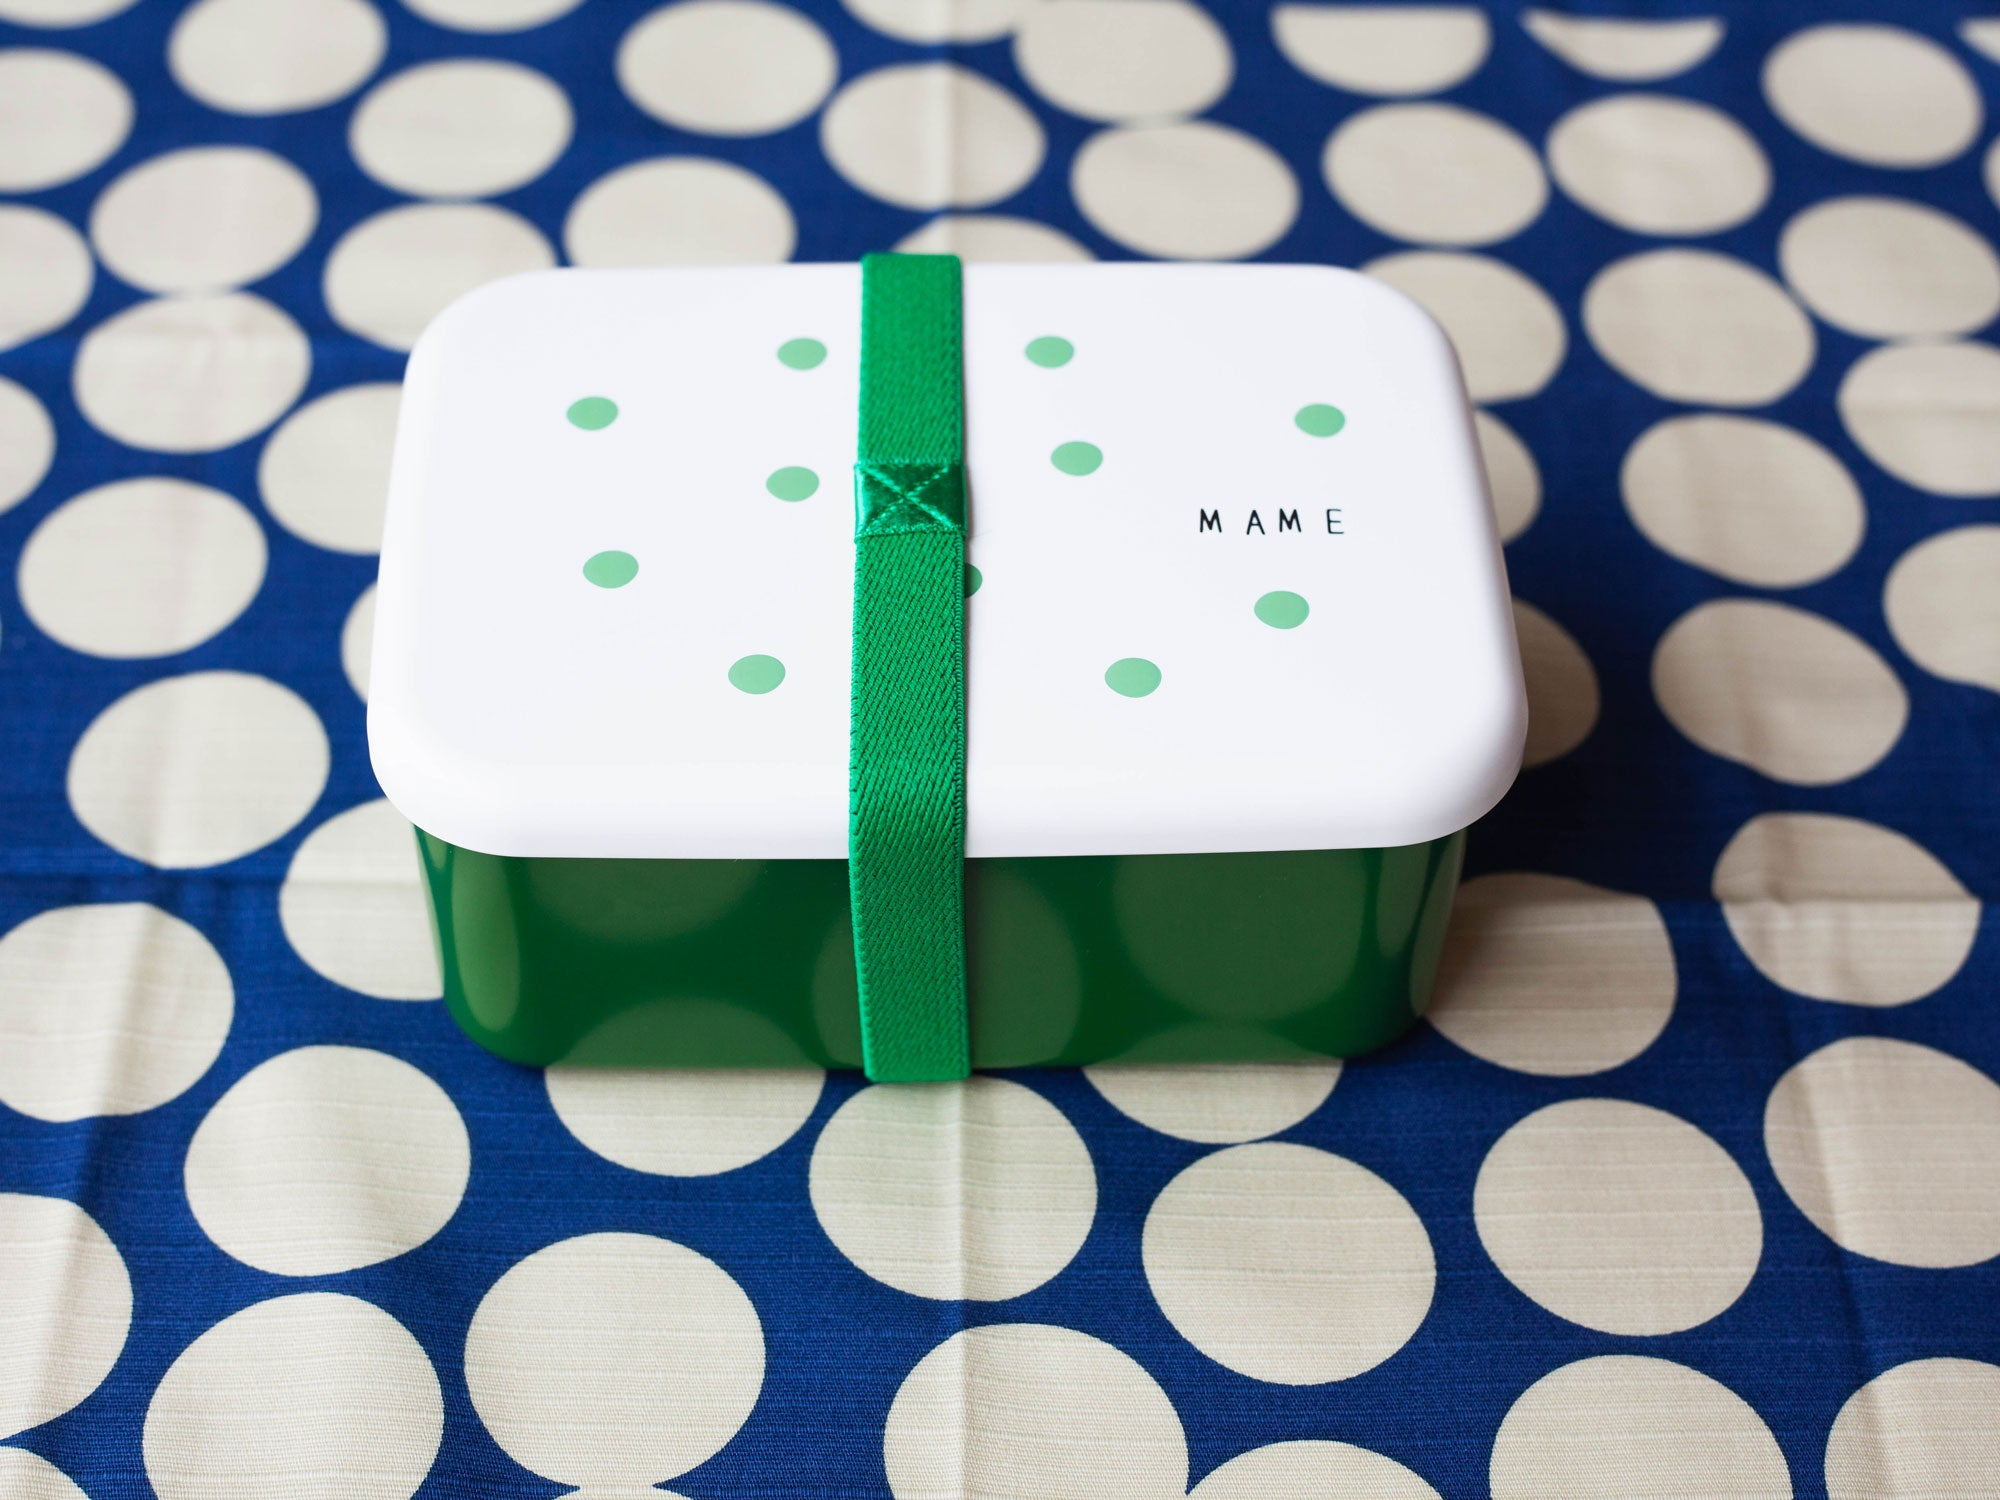 Toppings Rectangle Bento Box | Mame by Hakoya - Bento&co Japanese Bento Lunch Boxes and Kitchenware Specialists